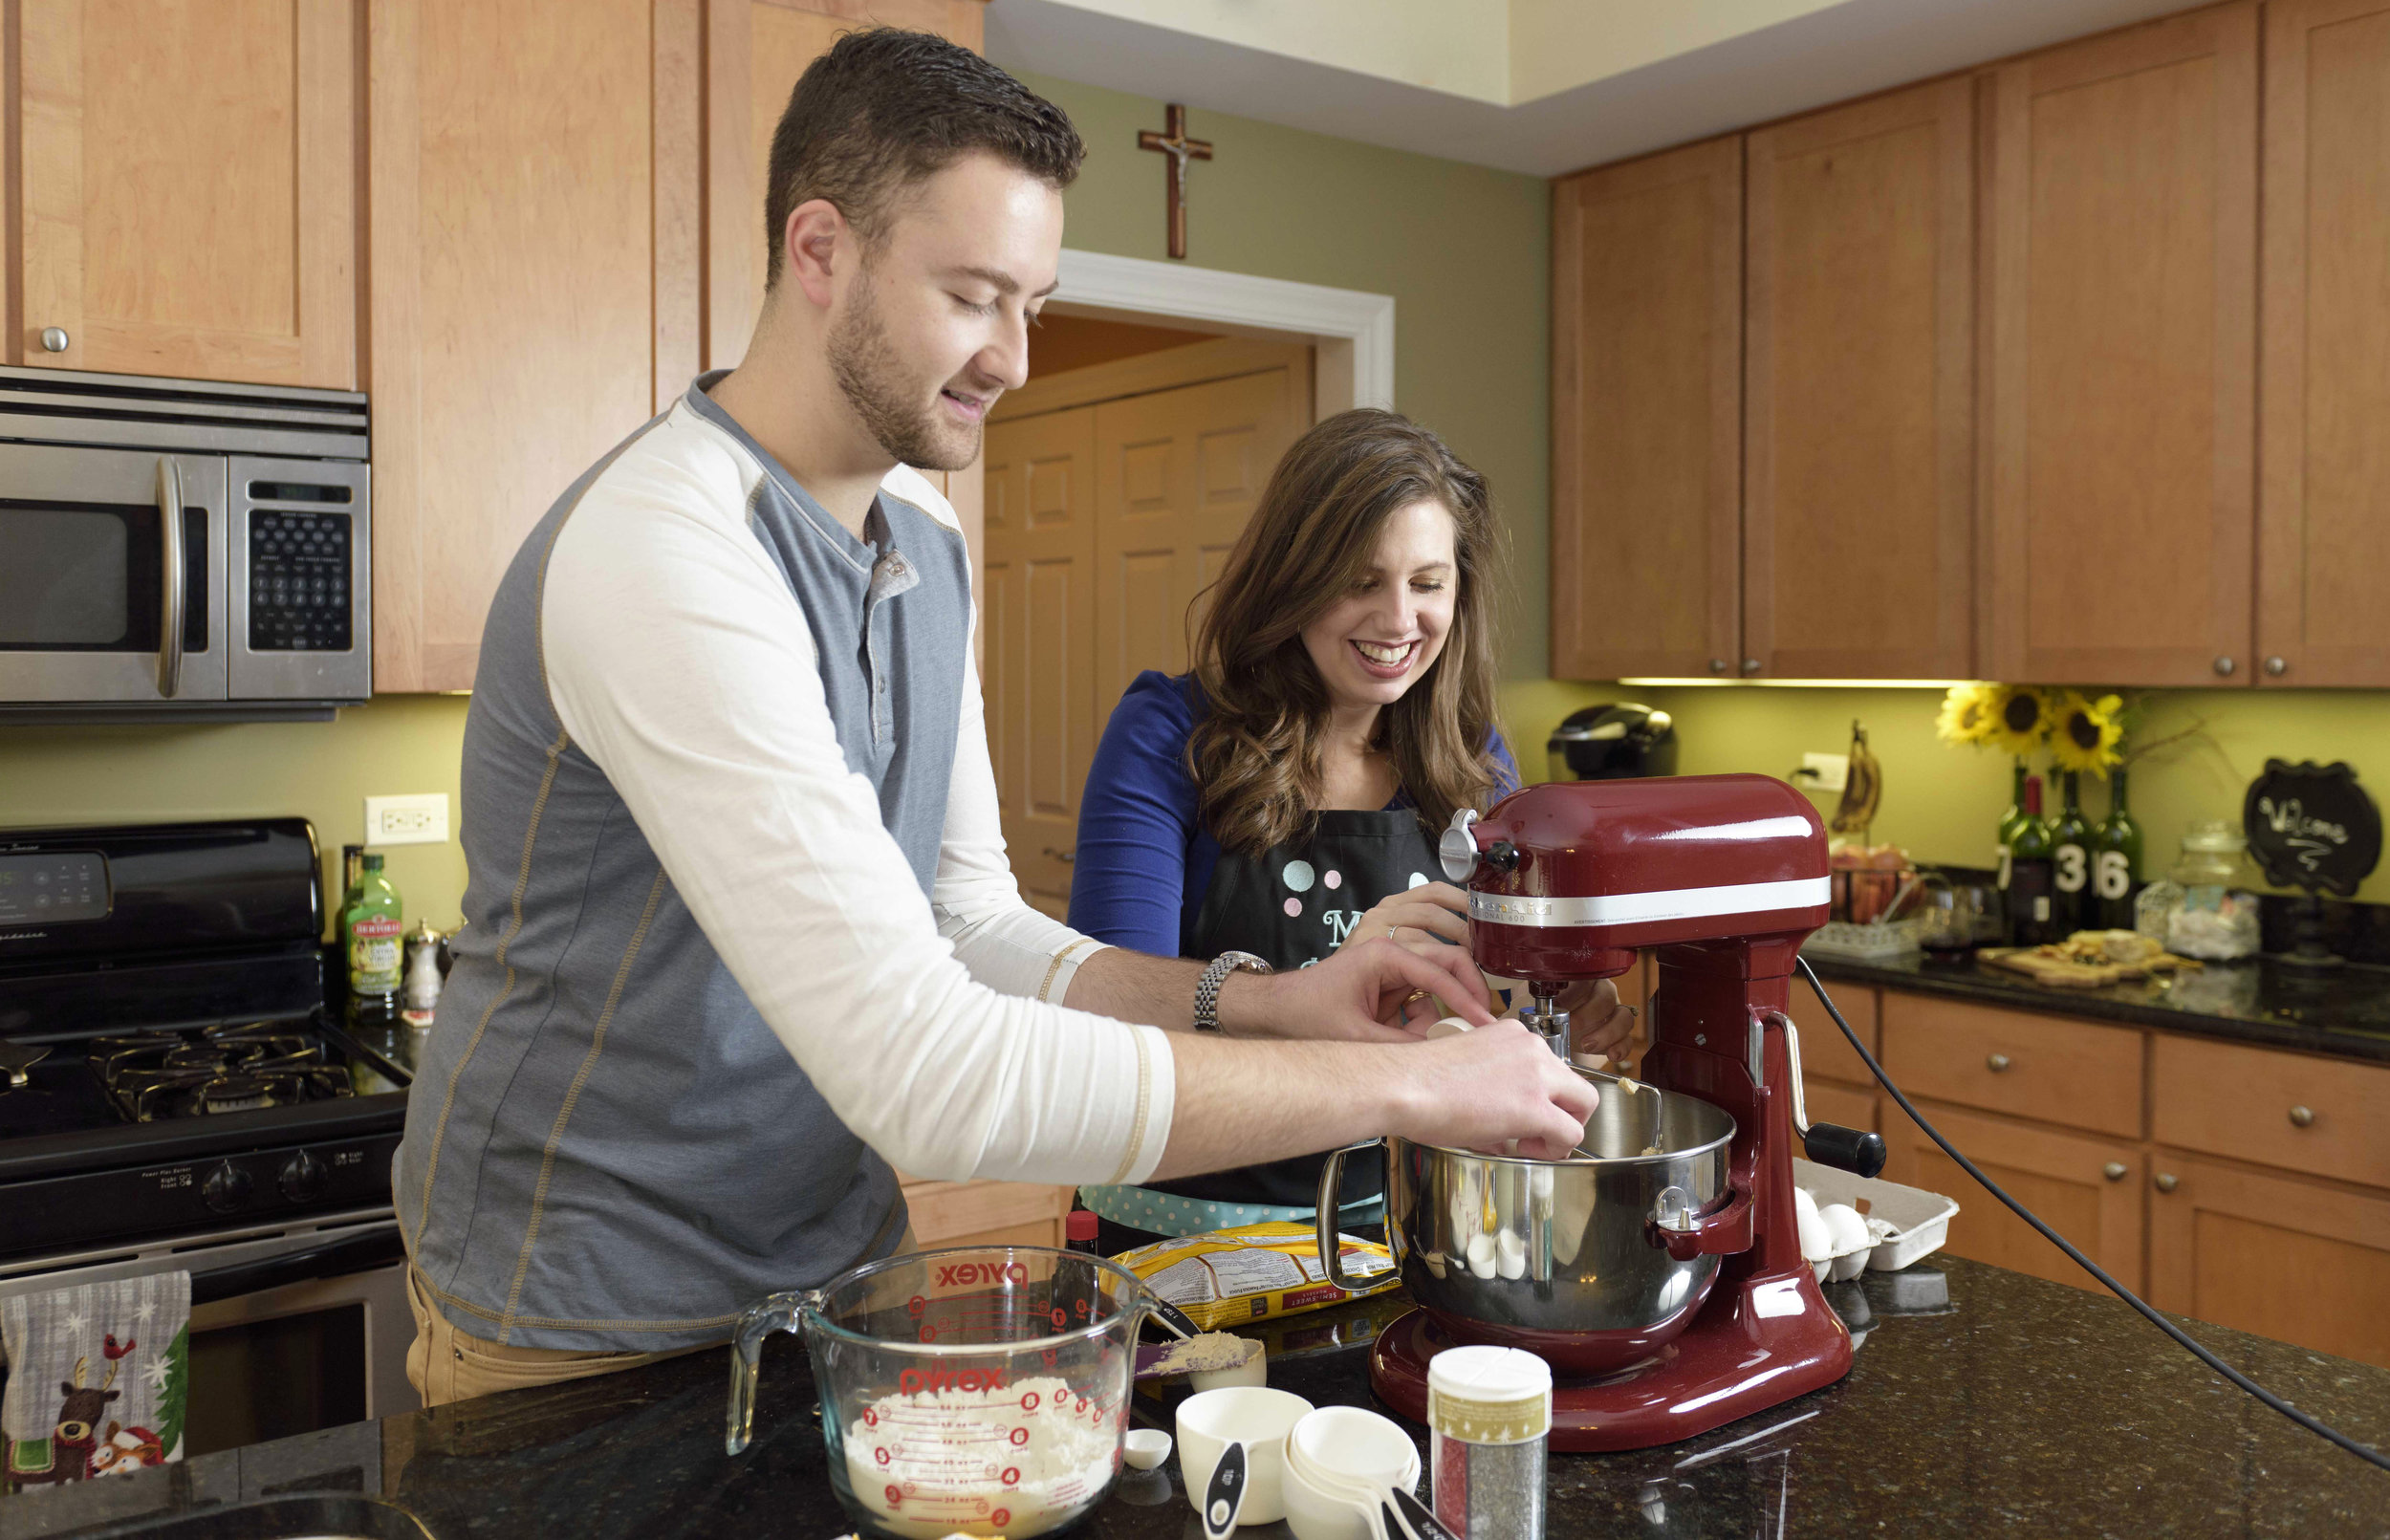 baking-cookies-chicago-engagement©COPYRIGHTCMP-0578.jpg